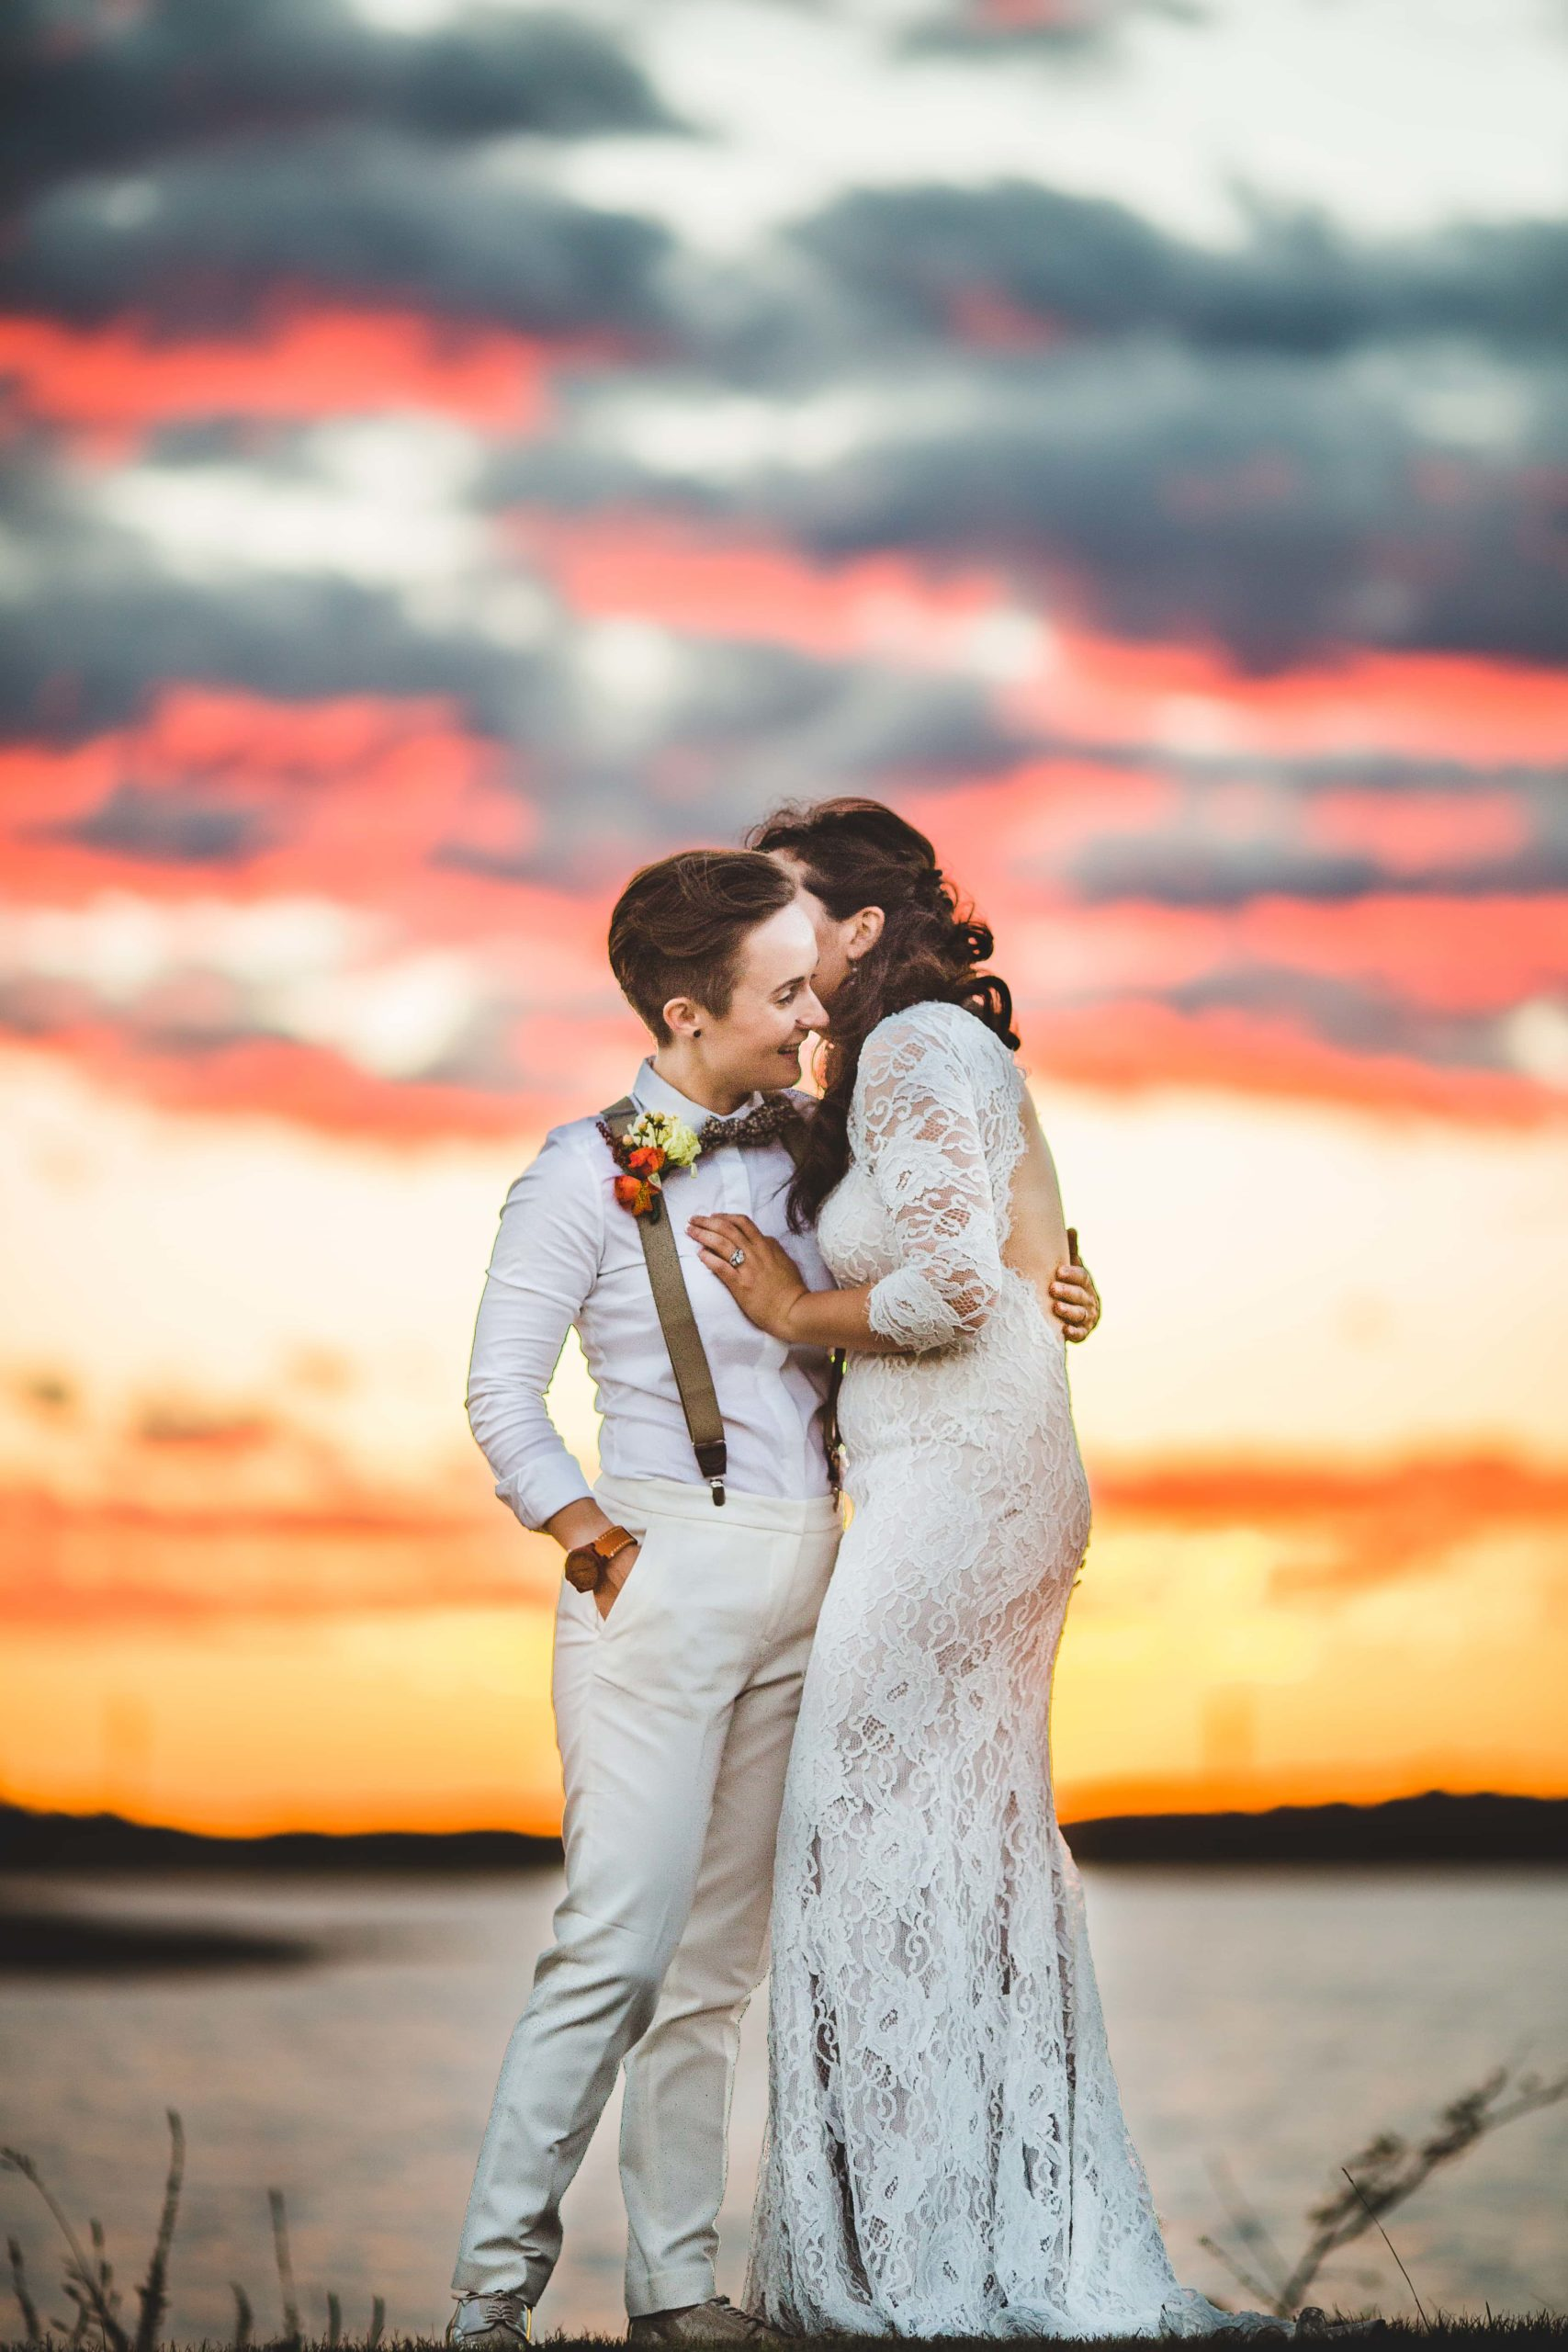 Atlanta Wedding Photographer LGBTQ Wedding Sunset